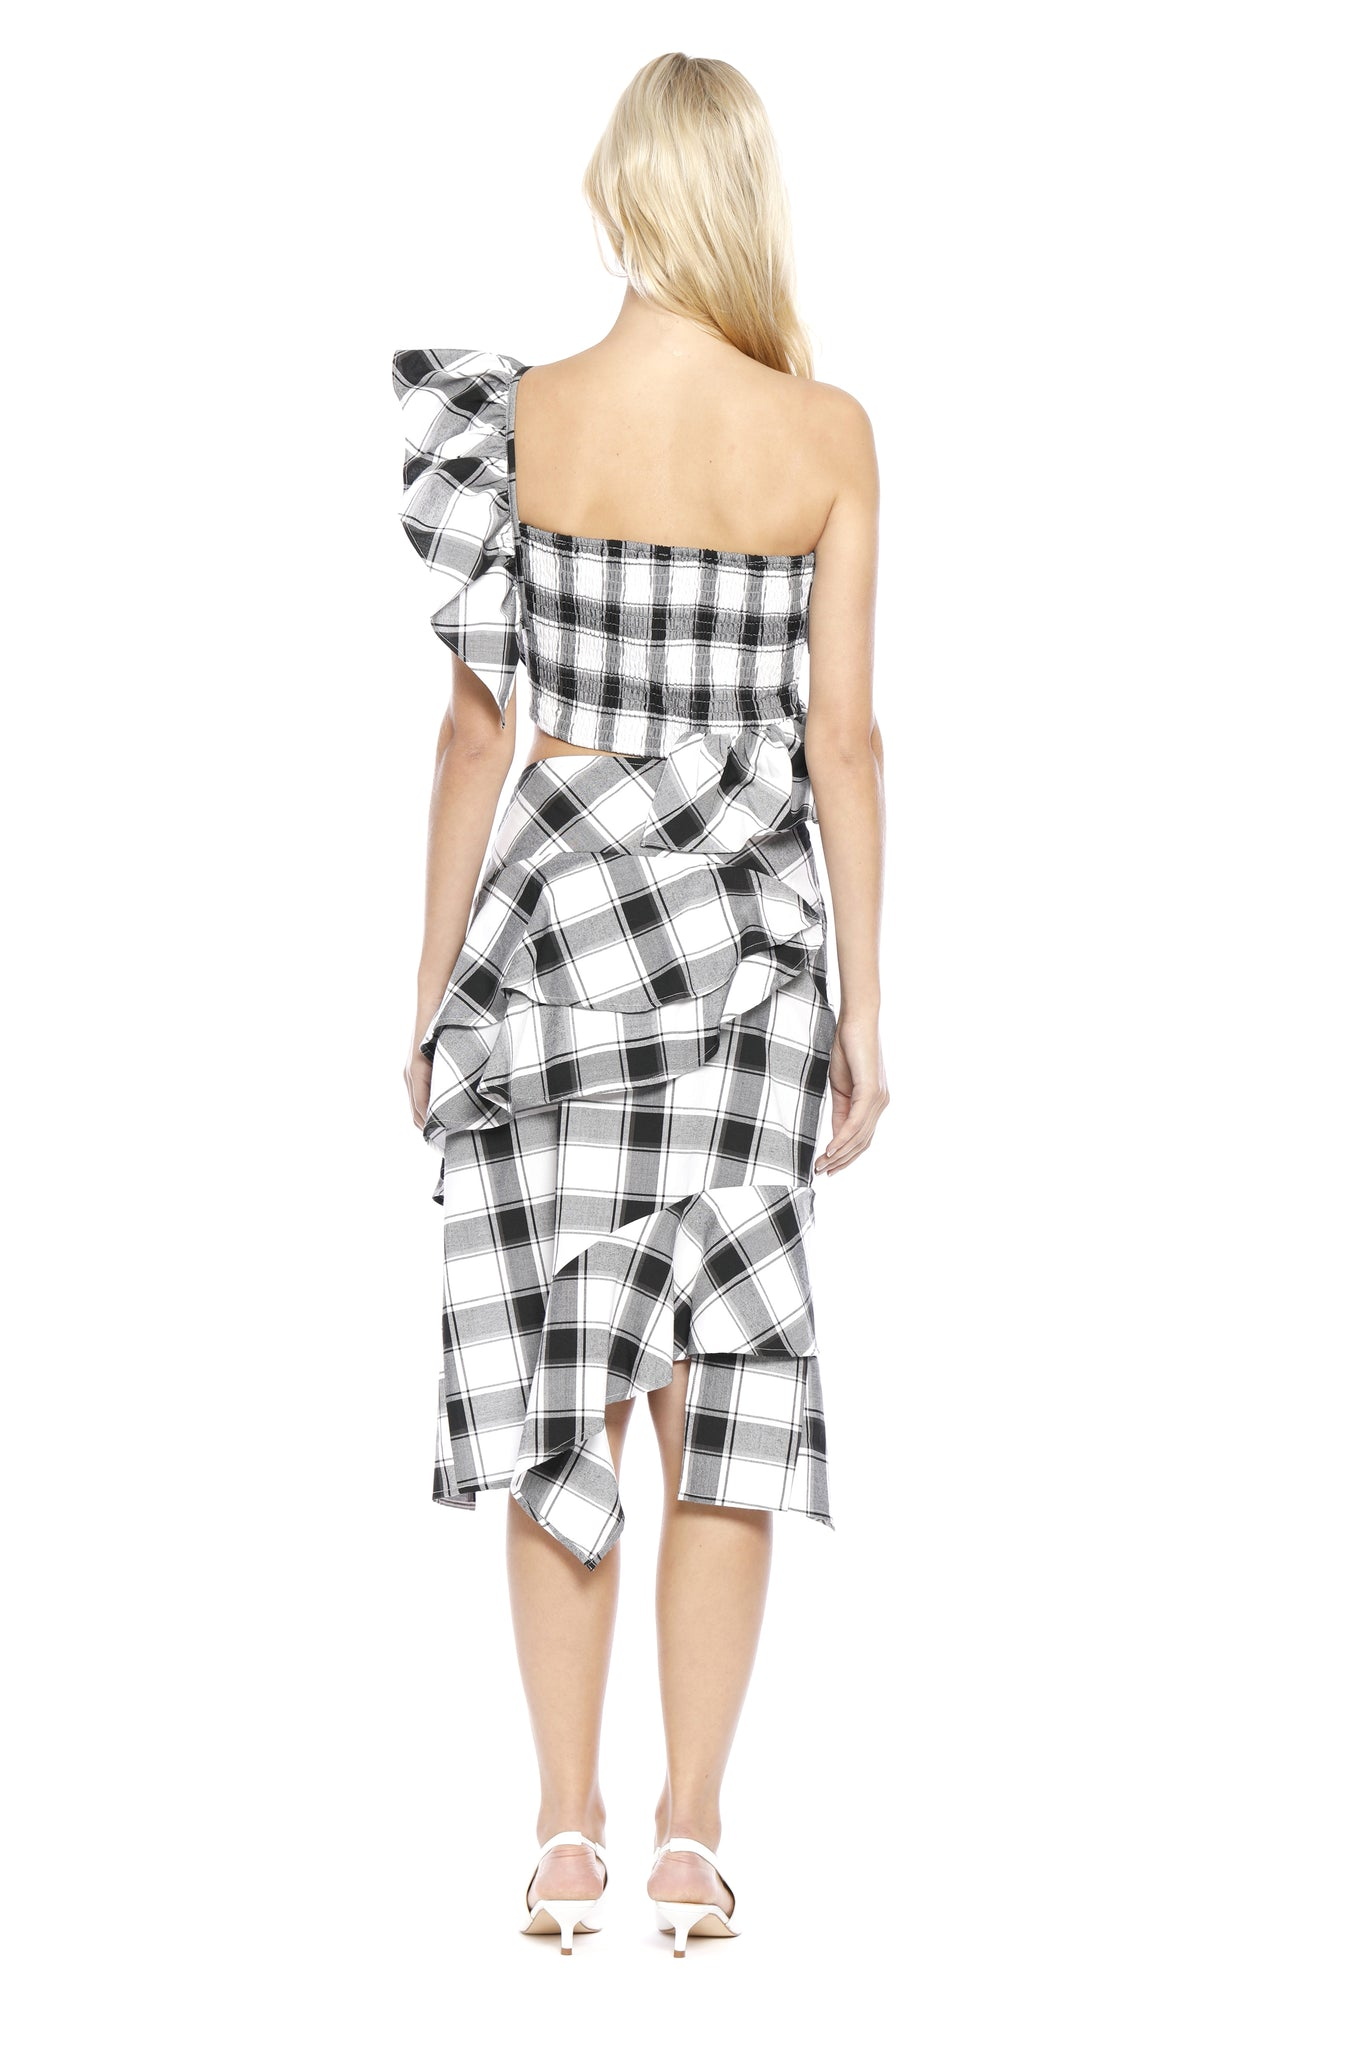 Back view of Ronda Skirt, asymmetrically layered black/white plaid skirt that is complementary to Margaret Top. 100% cotton and machine-washable.